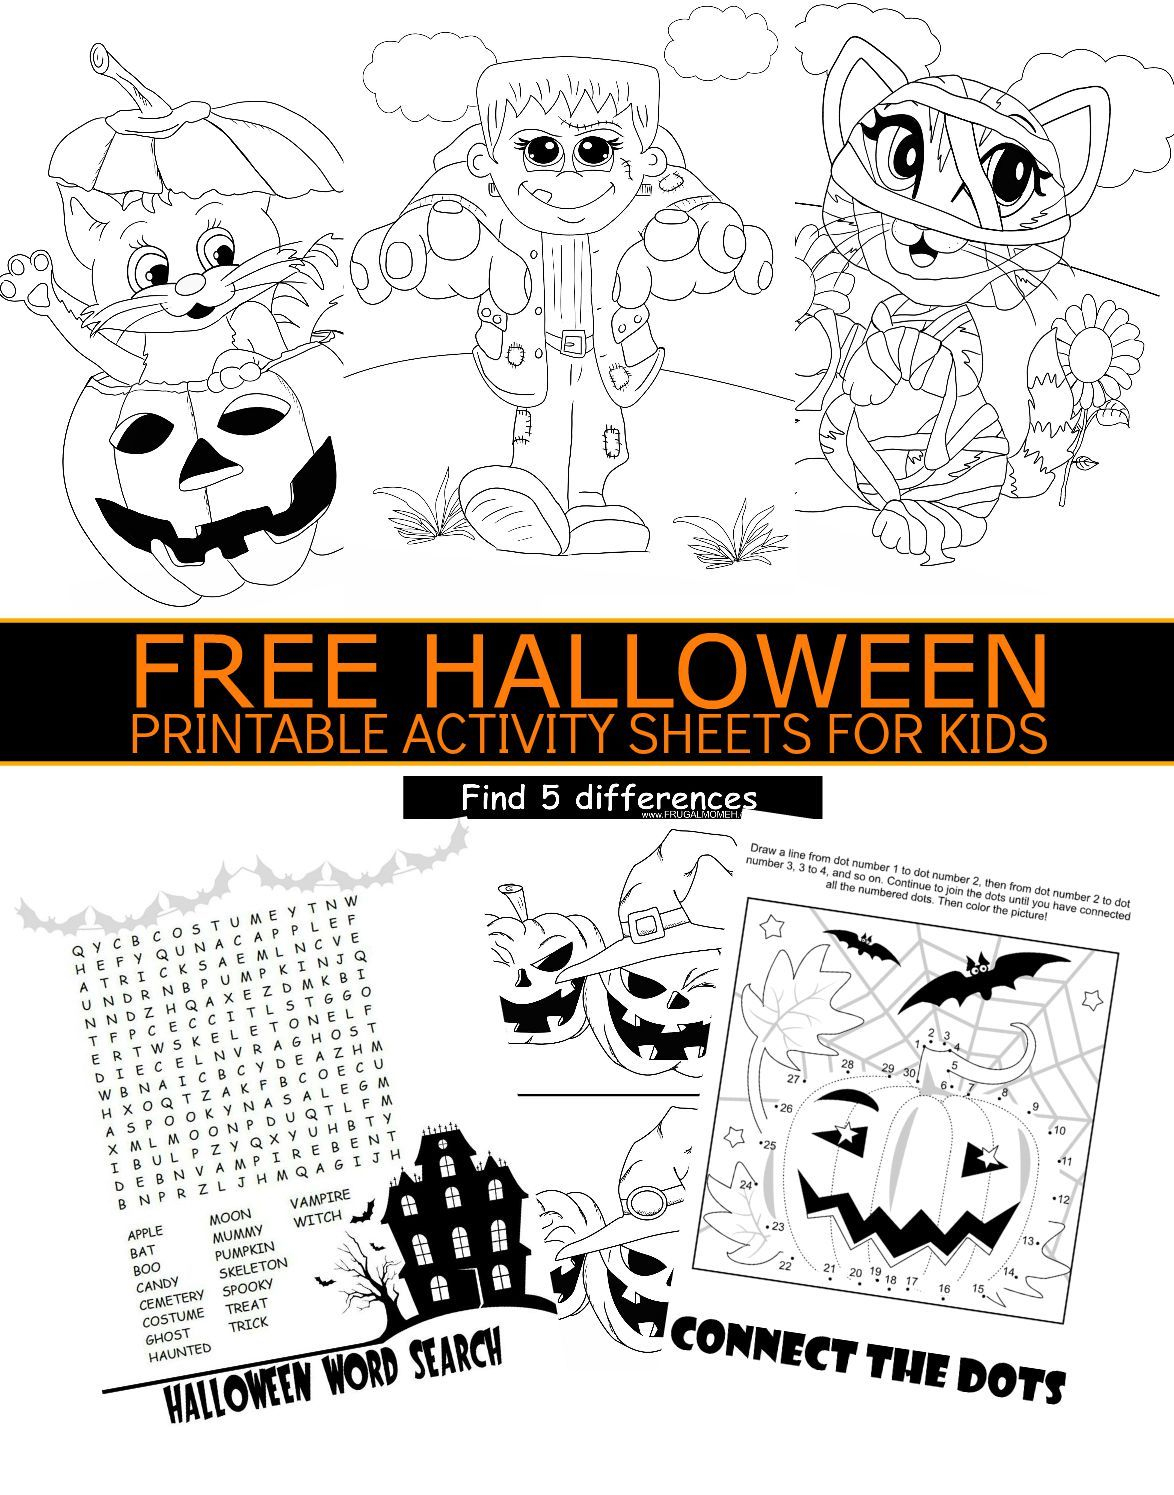 Free Halloween Printable Activity Sheets For Kids   Holidays - Free Printable Halloween Games For Kids